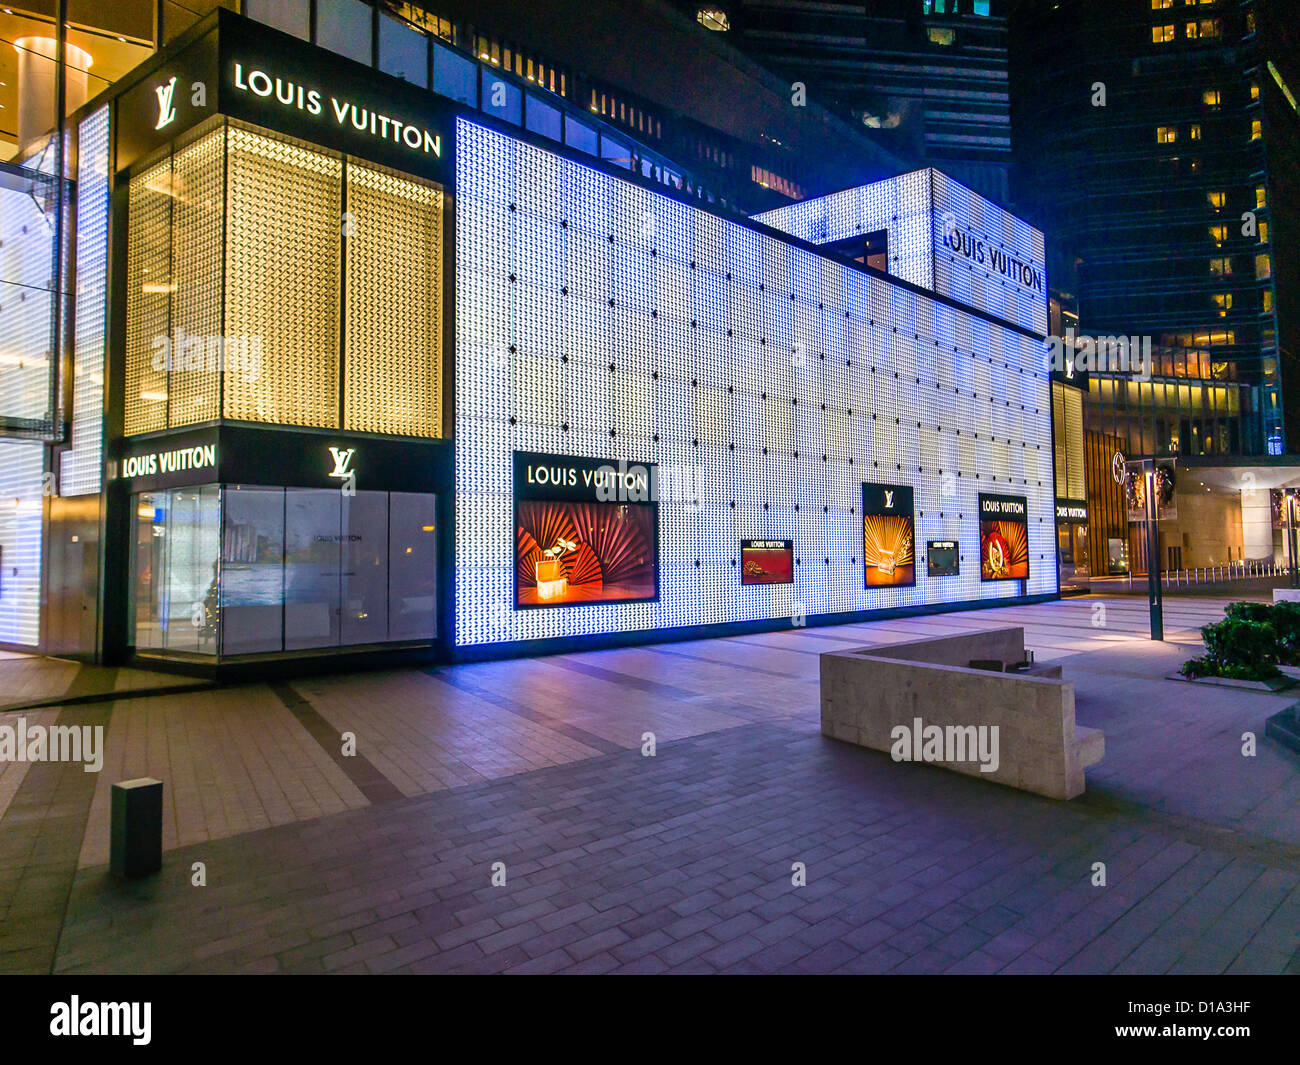 ebbcd9bacdc Macau LV Shop Macao Stock Photo: 52468123 - Alamy